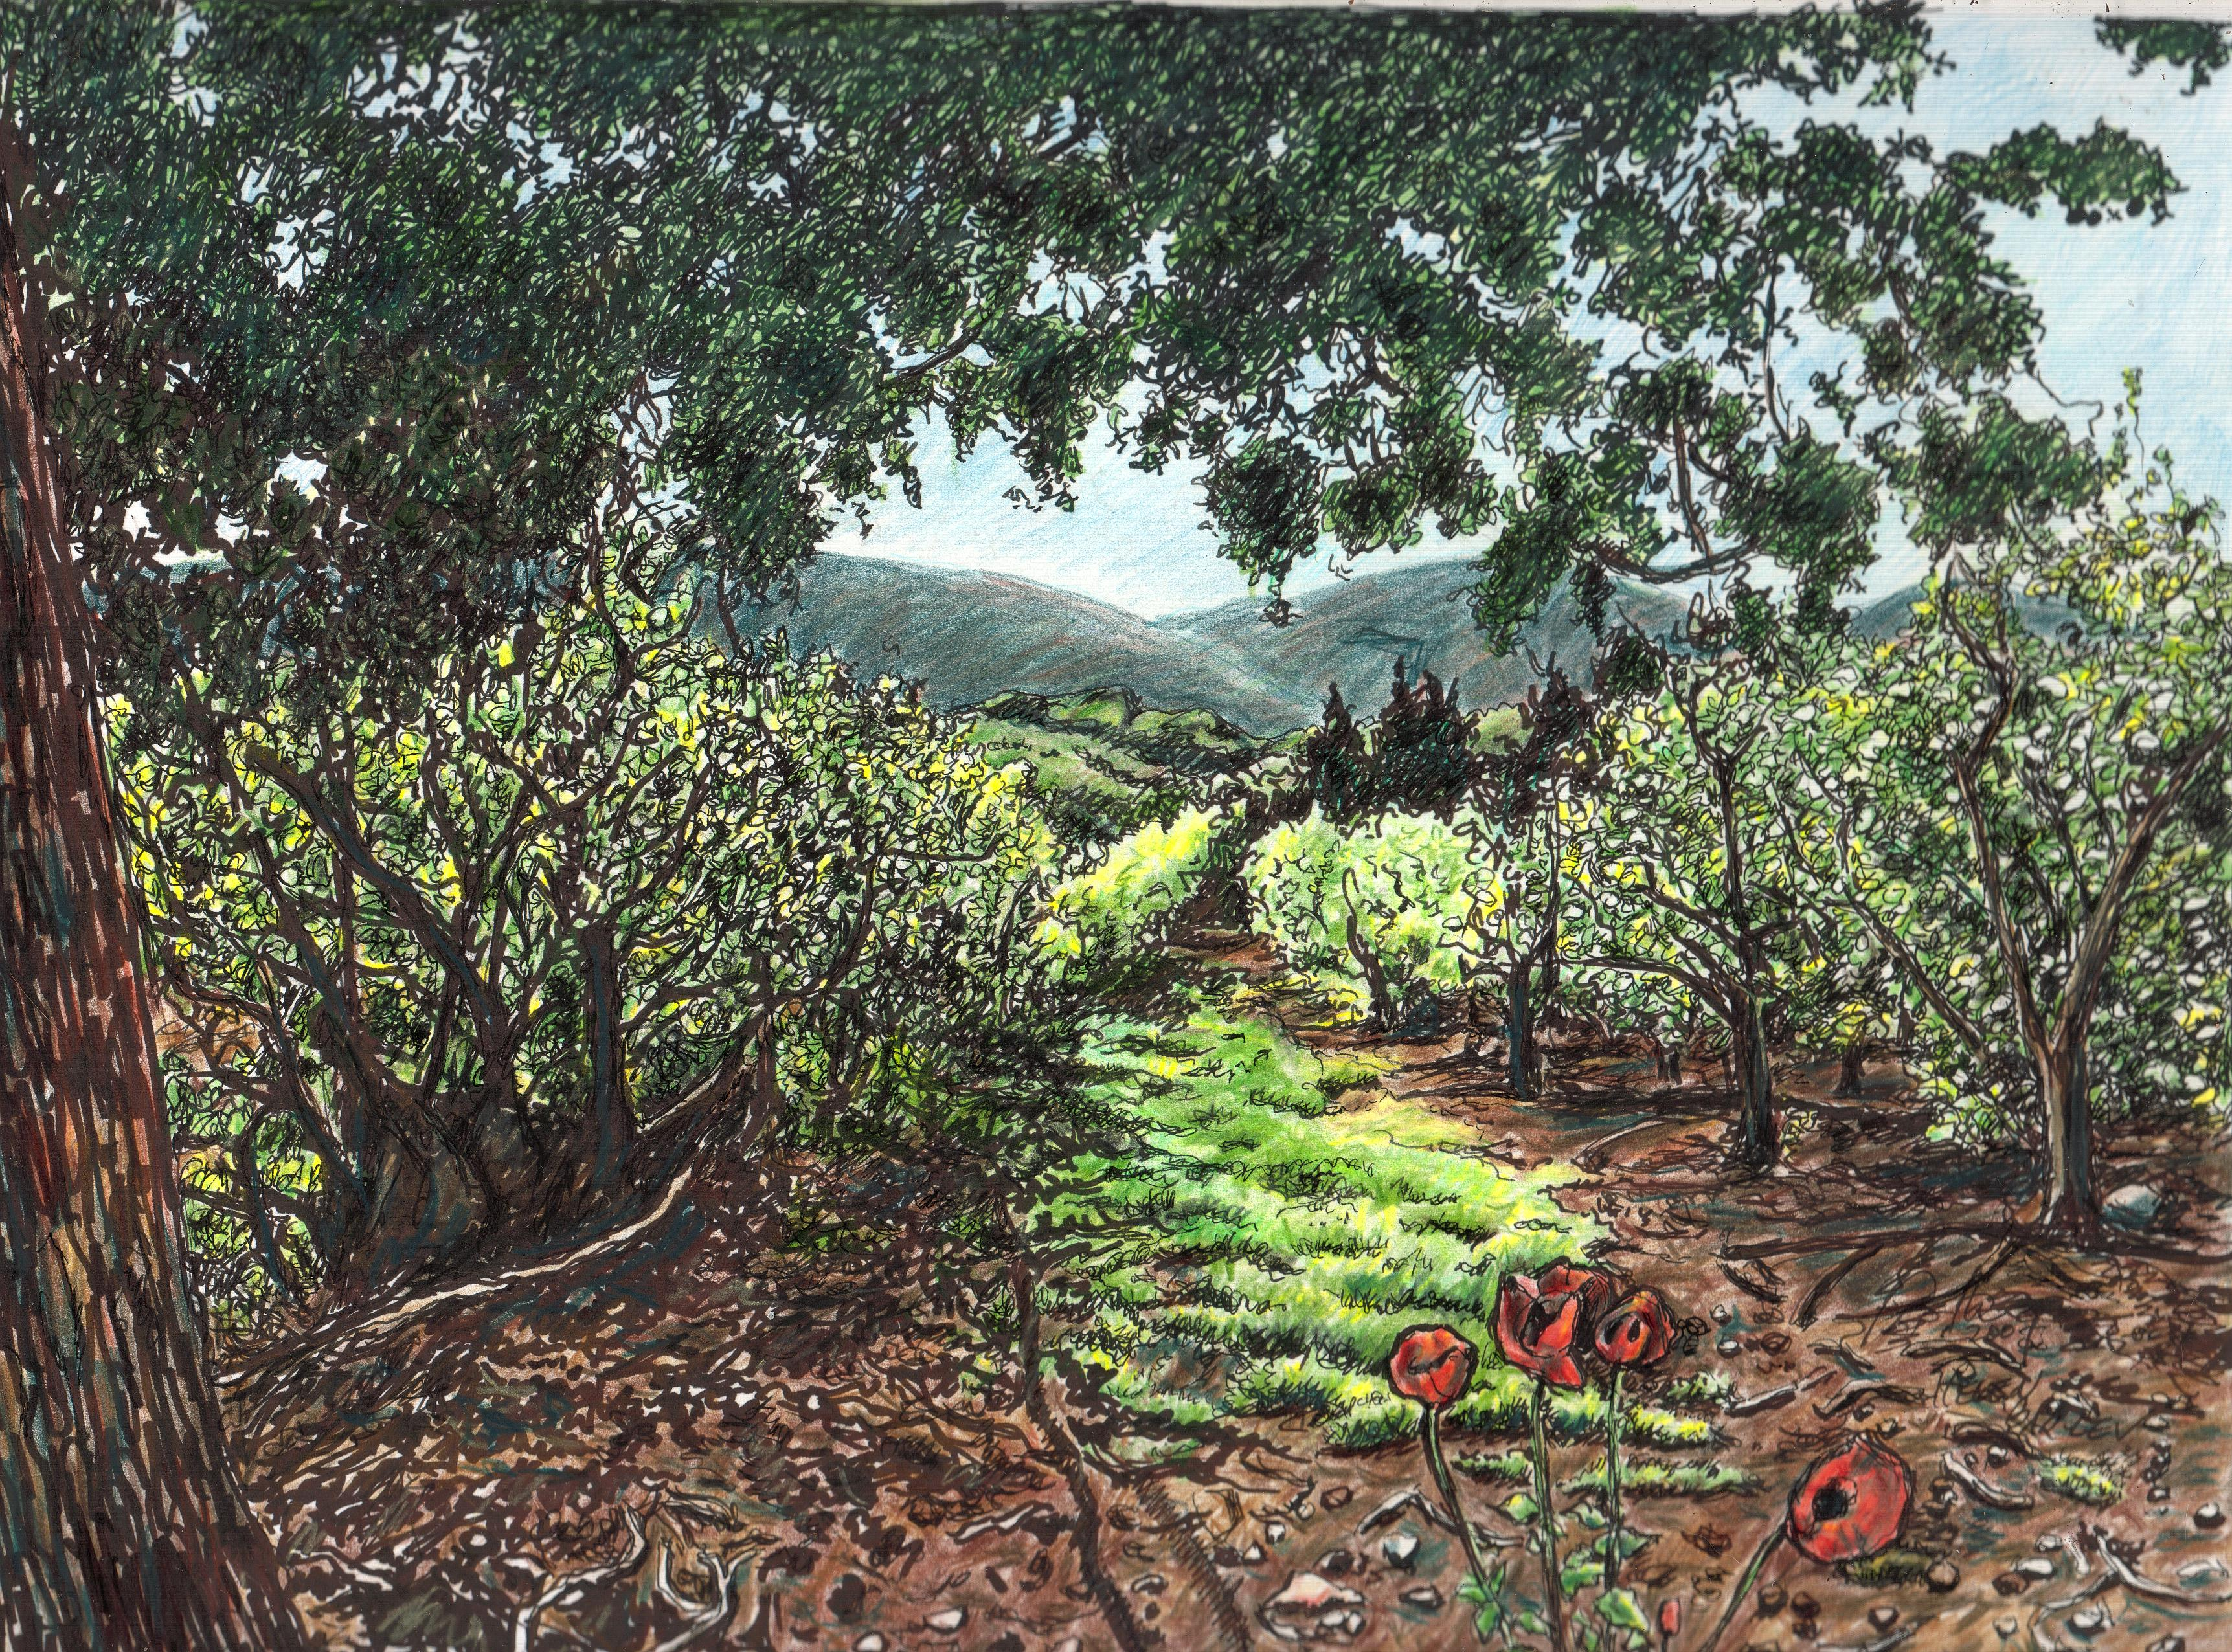 Apple orchards with poppies